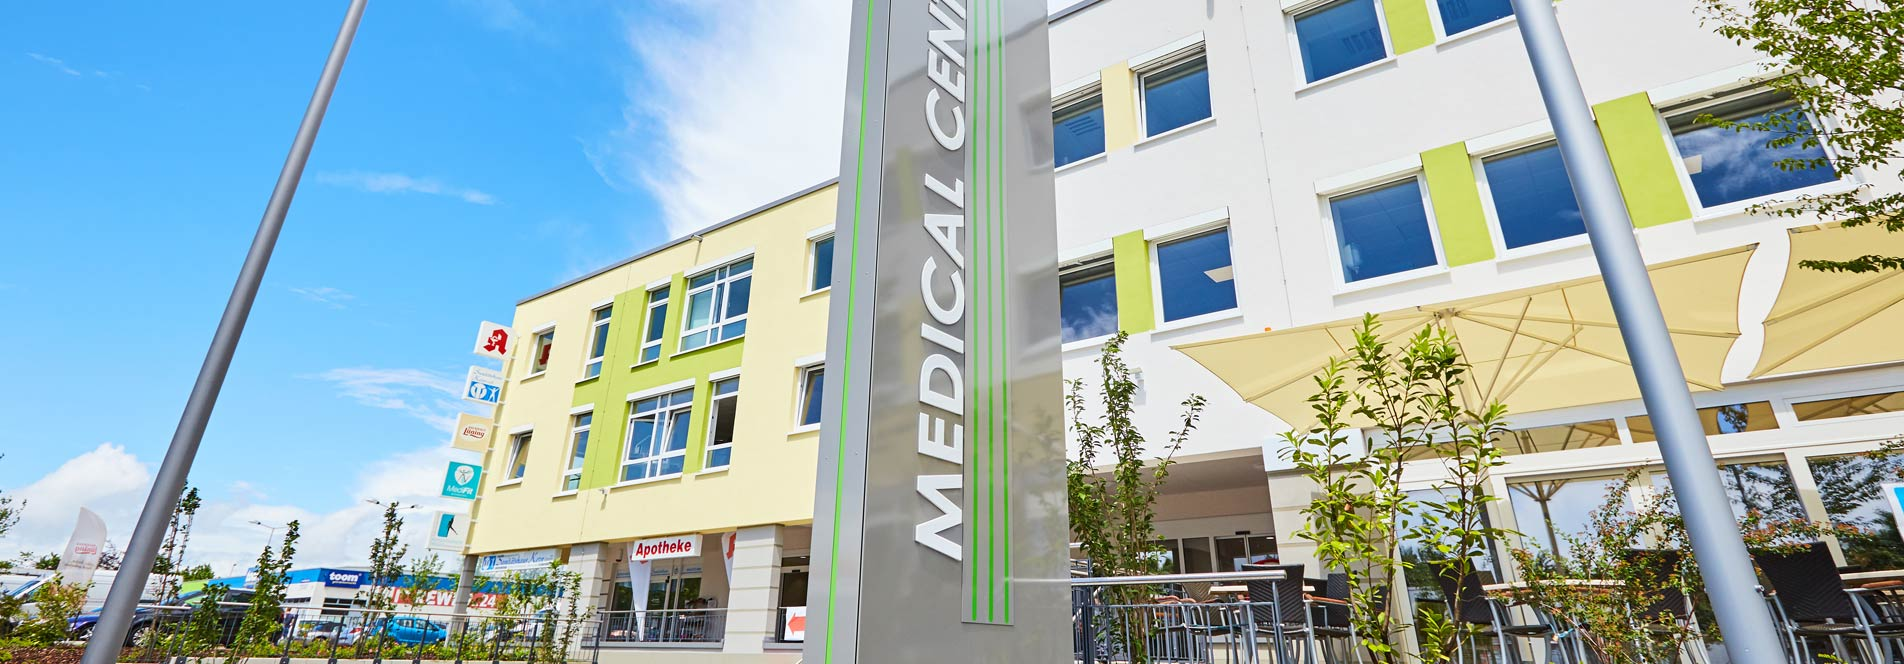 Medical Center Wiesbaden - Ansprechpartner 1